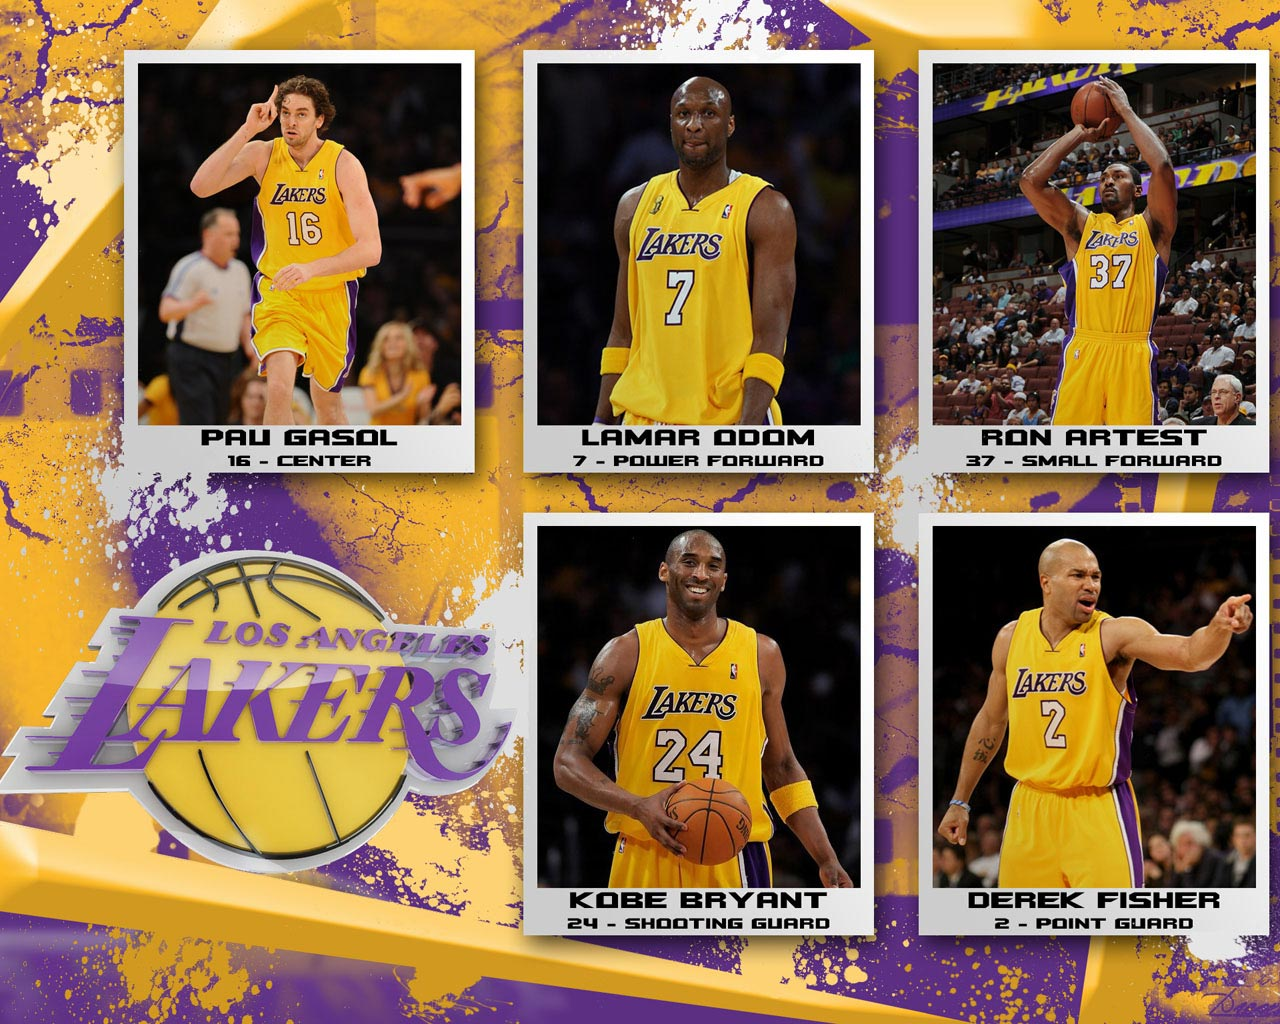 LA Lakers 2010 Wallpaper